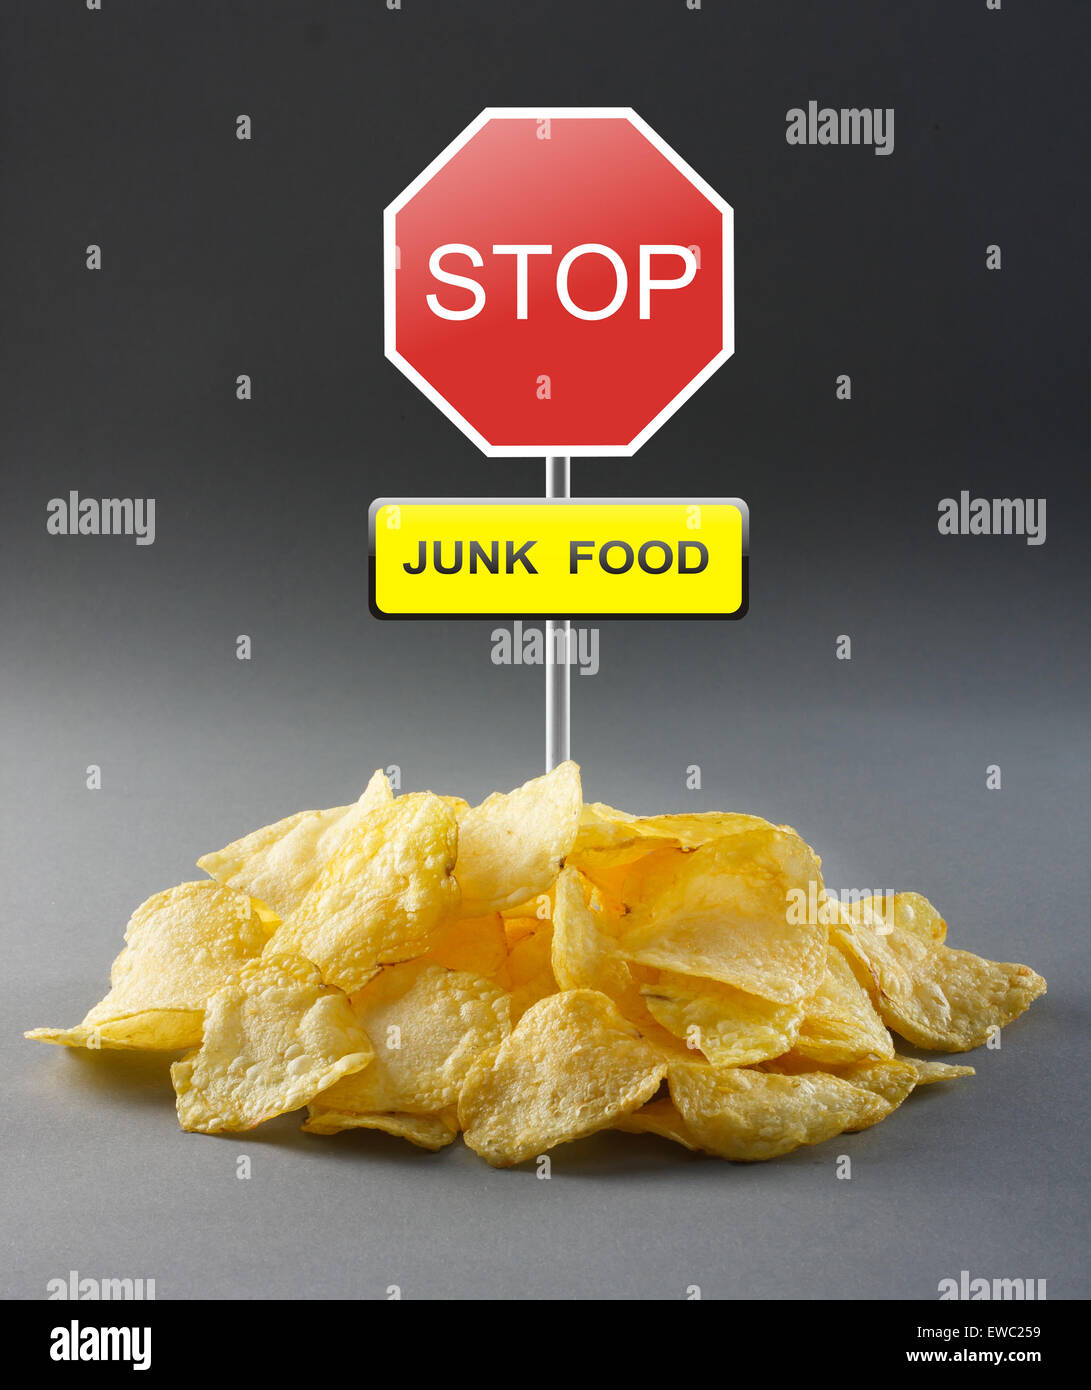 Junk food concept - potato chips and road stop sign - Stock Image